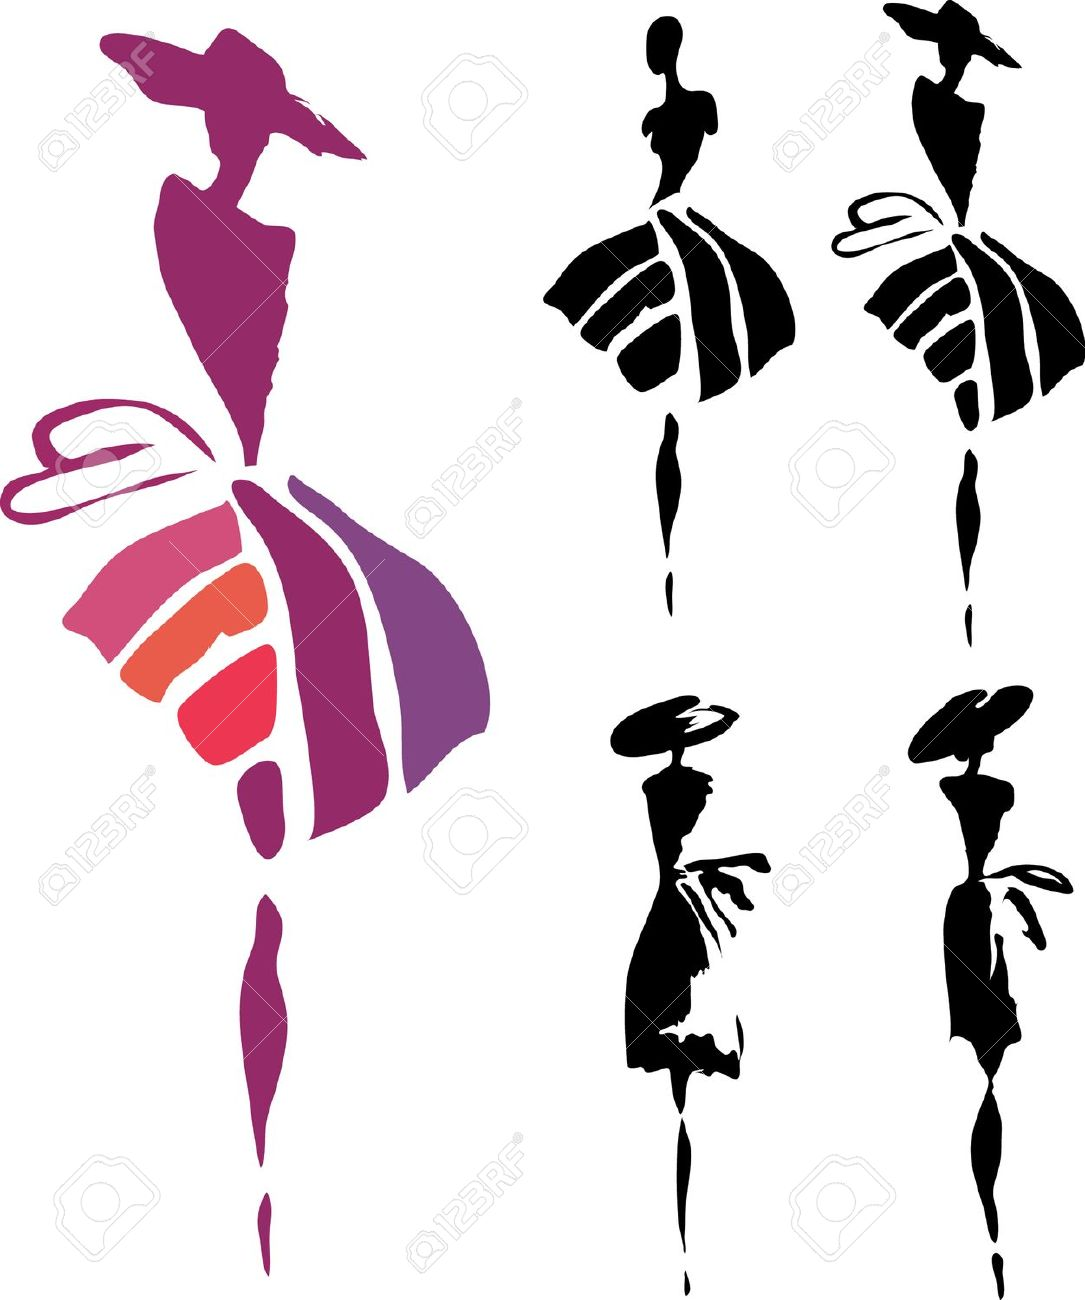 1085x1300 Woman In Dress Silhouette Clipart